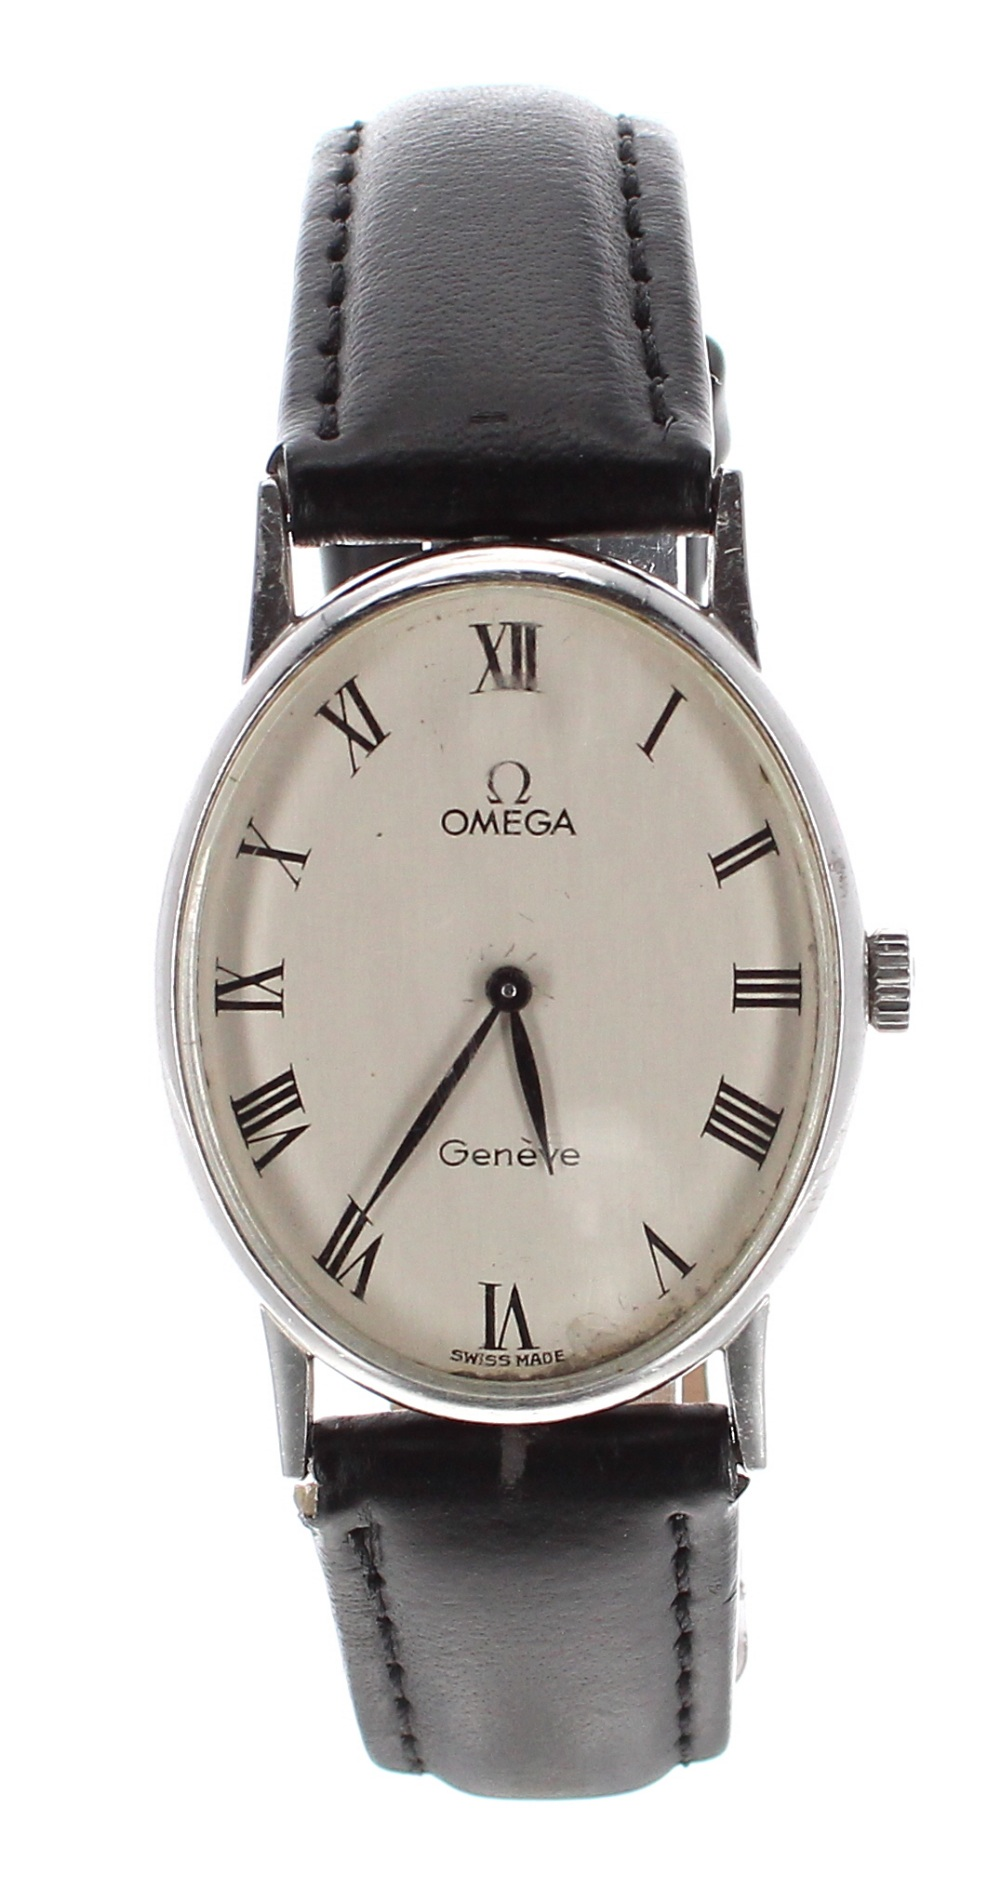 Lot 7 - Omega Genéve oval cased stainless steel unisex wristwatch, ref. 511.416, oval silvered dial, with